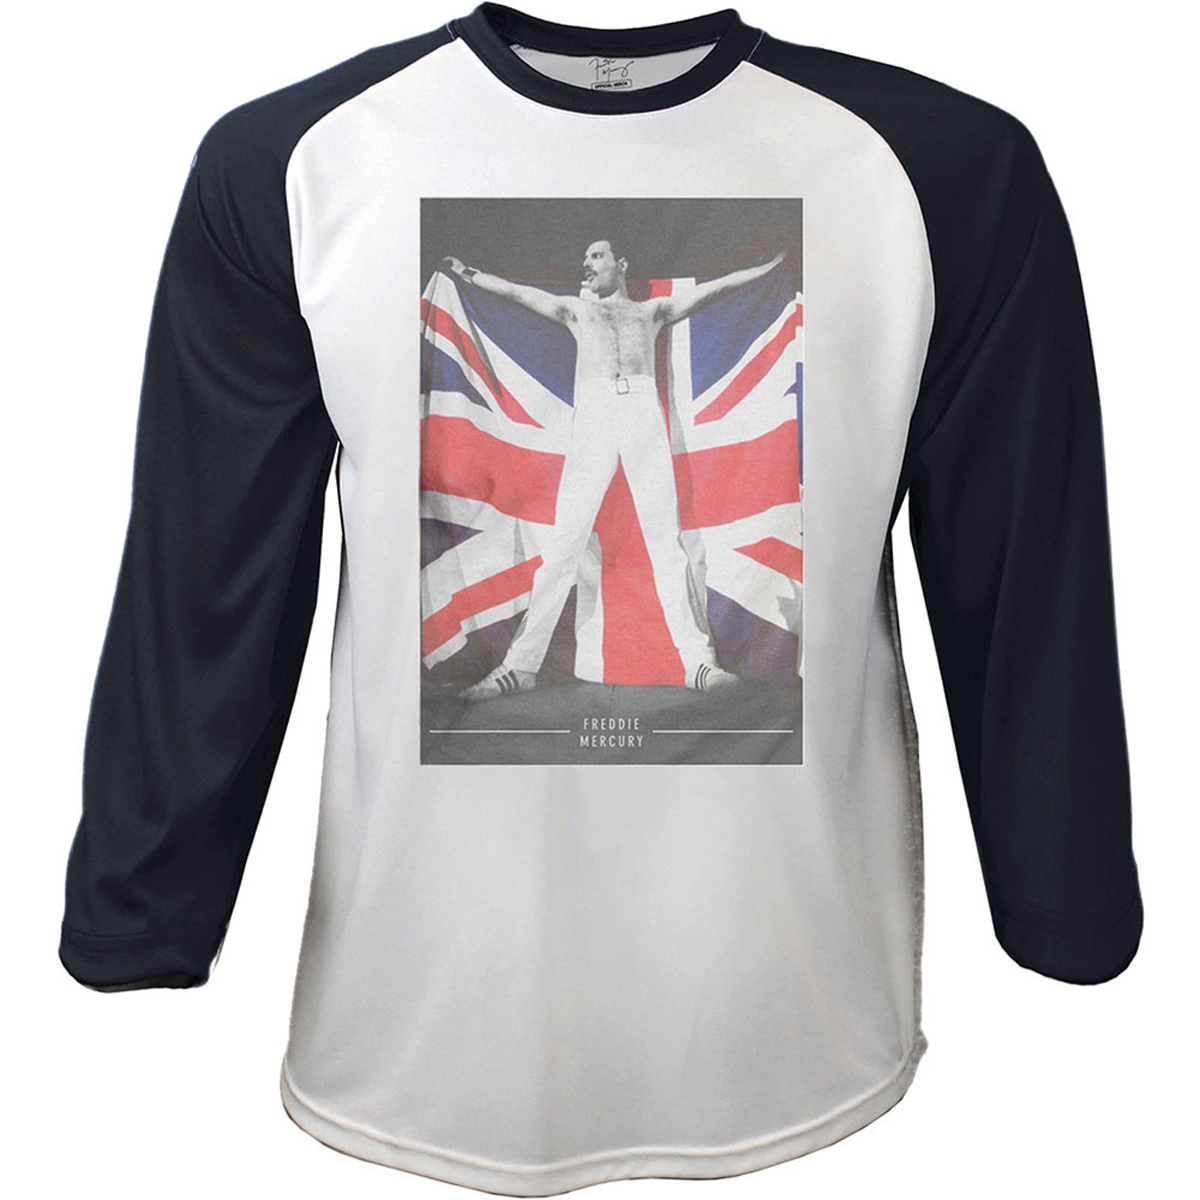 Queen /'Union Jack/' T-Shirt NEW /& OFFICIAL!